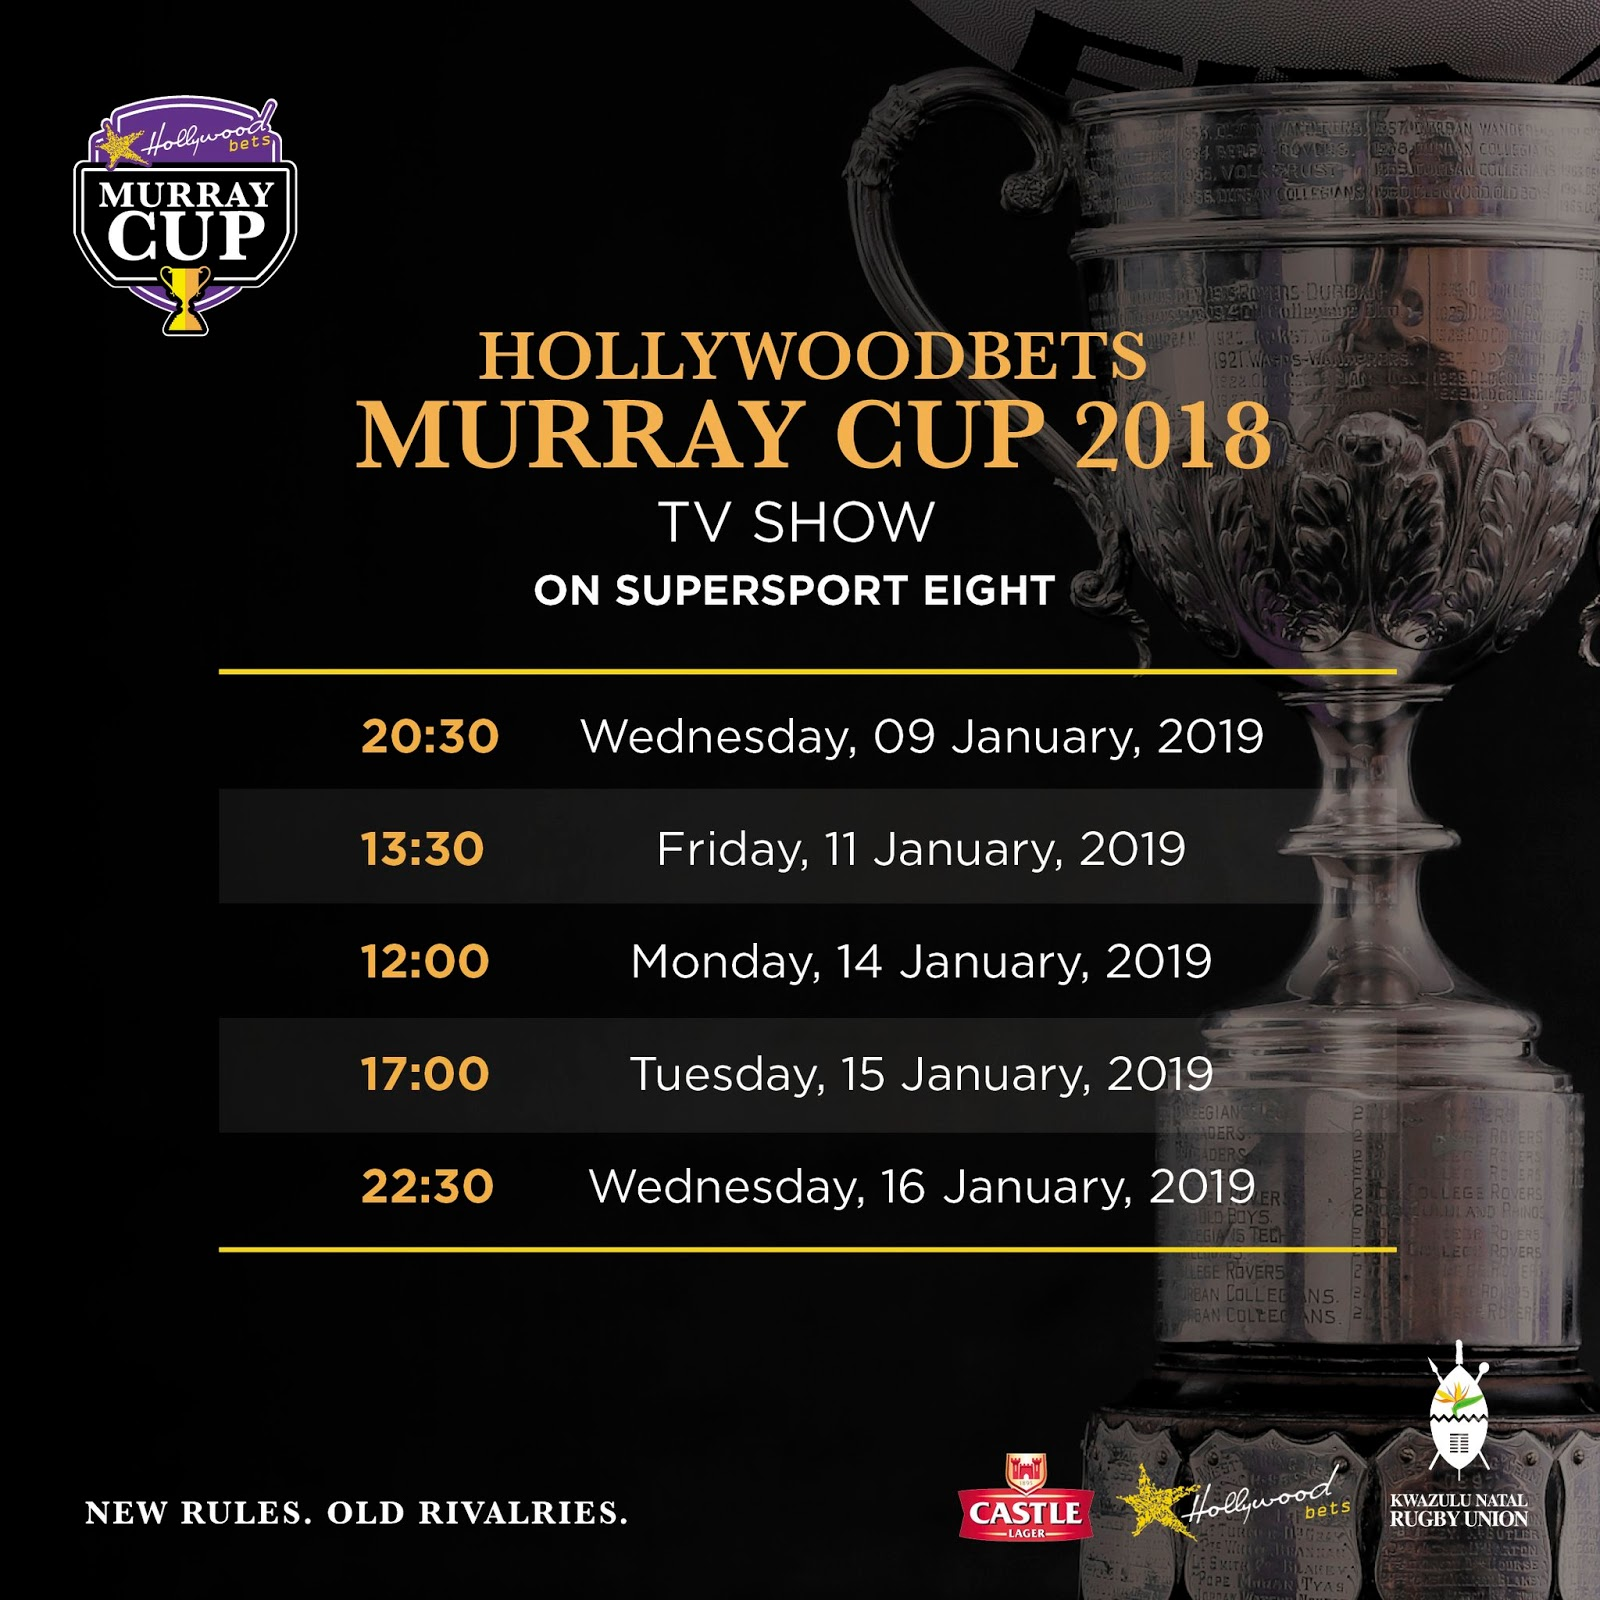 Hollywoodbets Murray Cup 2018 - TV Schedule - Rugby - Supersport 8